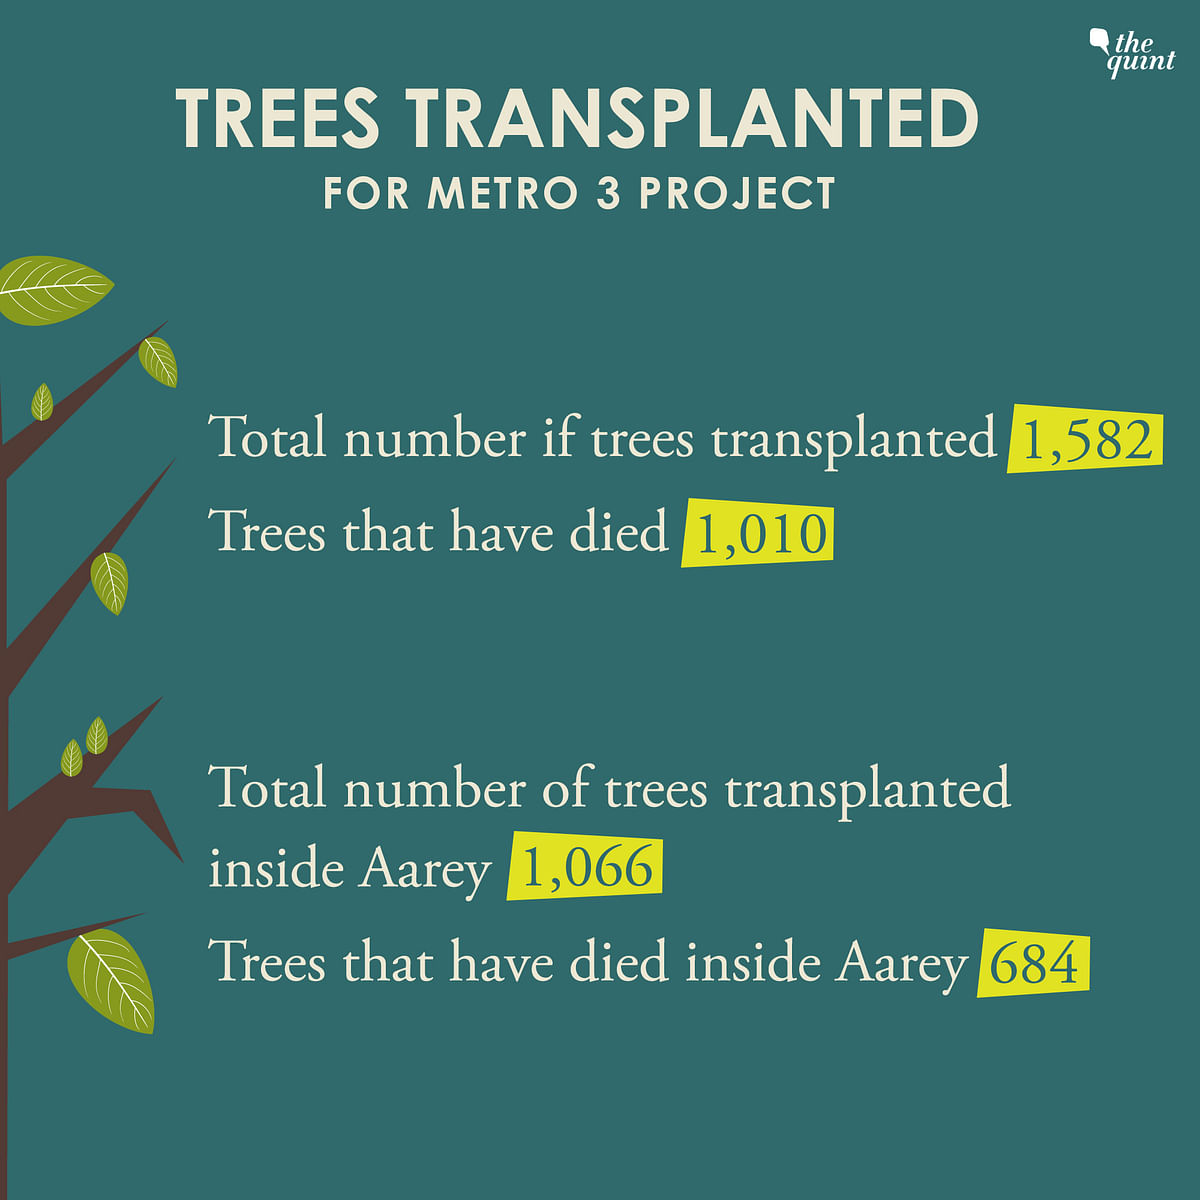 684 of the 1,066 transplanted trees inside the Aarey Milk Colony, for the Metro 3 project, have already died.